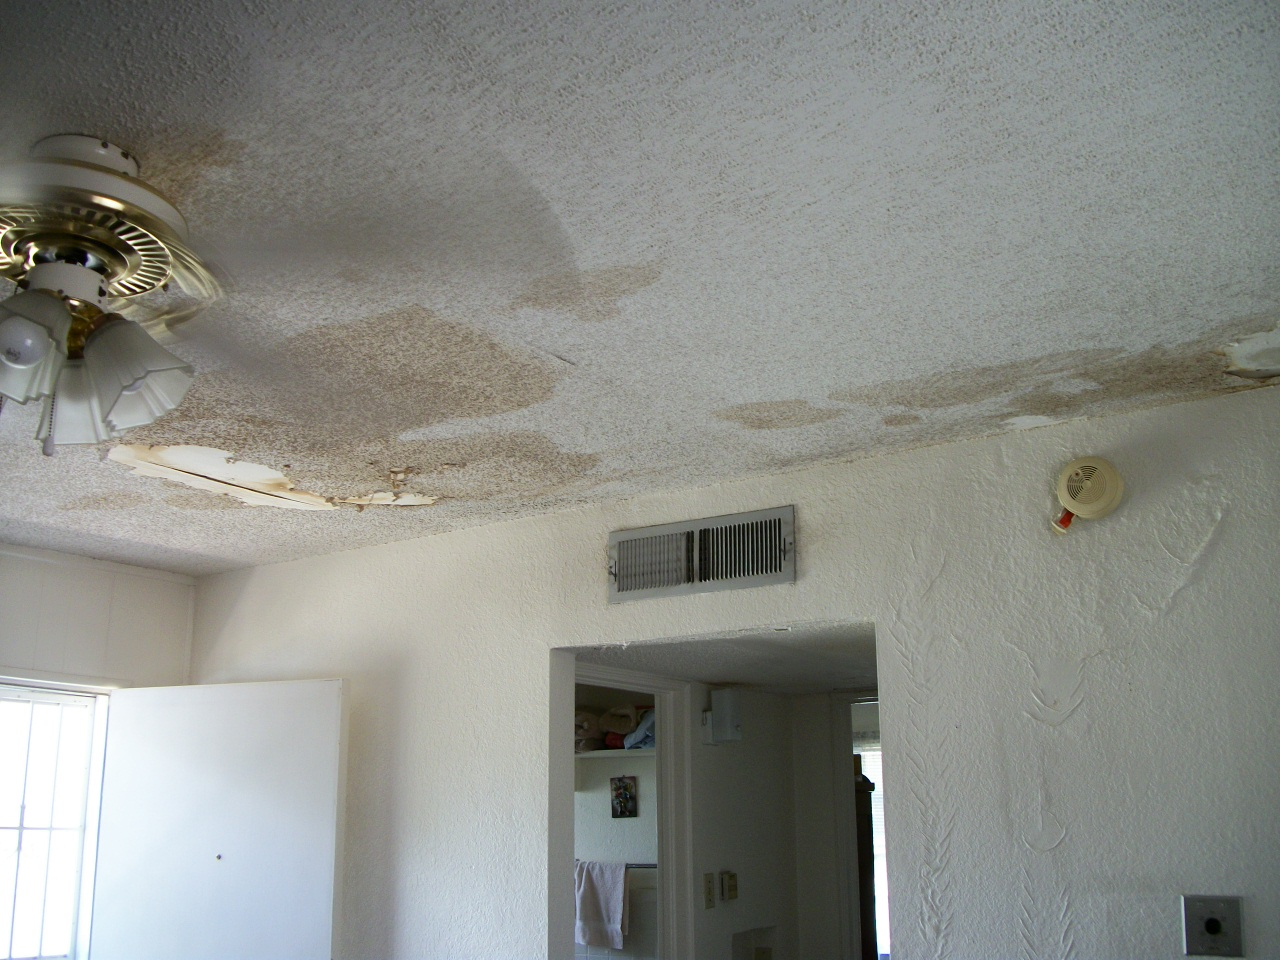 Water damage from a roof leak could lead to mold in your home